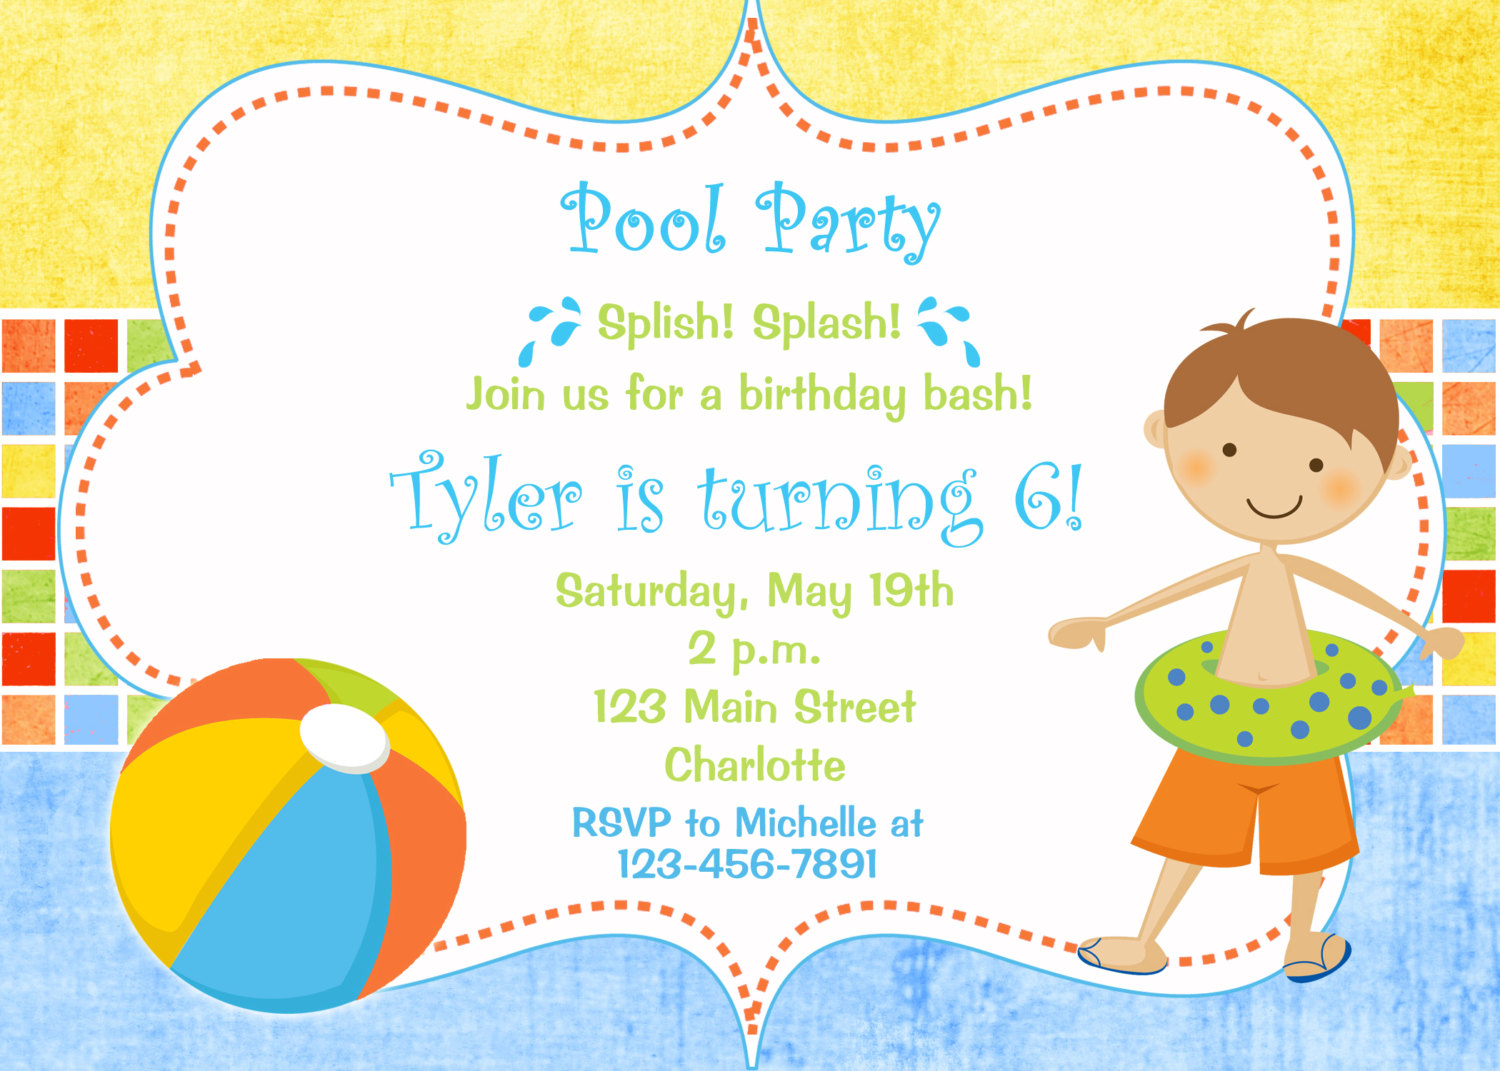 Pool party invitations clipart 3